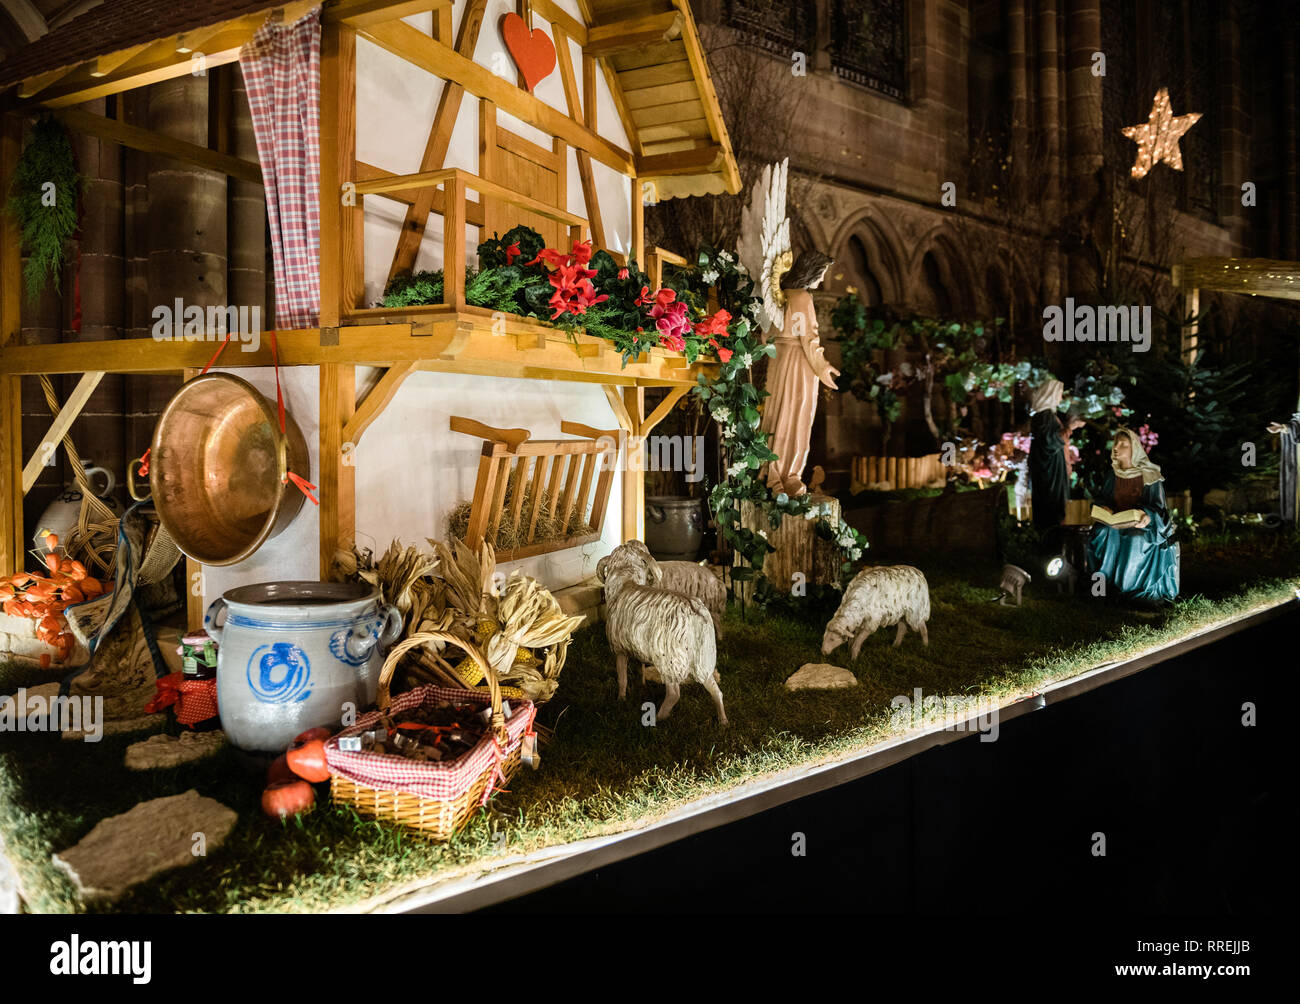 Nativity manger scene in the Notre-Dame de Strasbourg cathedral during winter holidays season representing the birth of Jesus - featuring aisle personages  - Stock Image